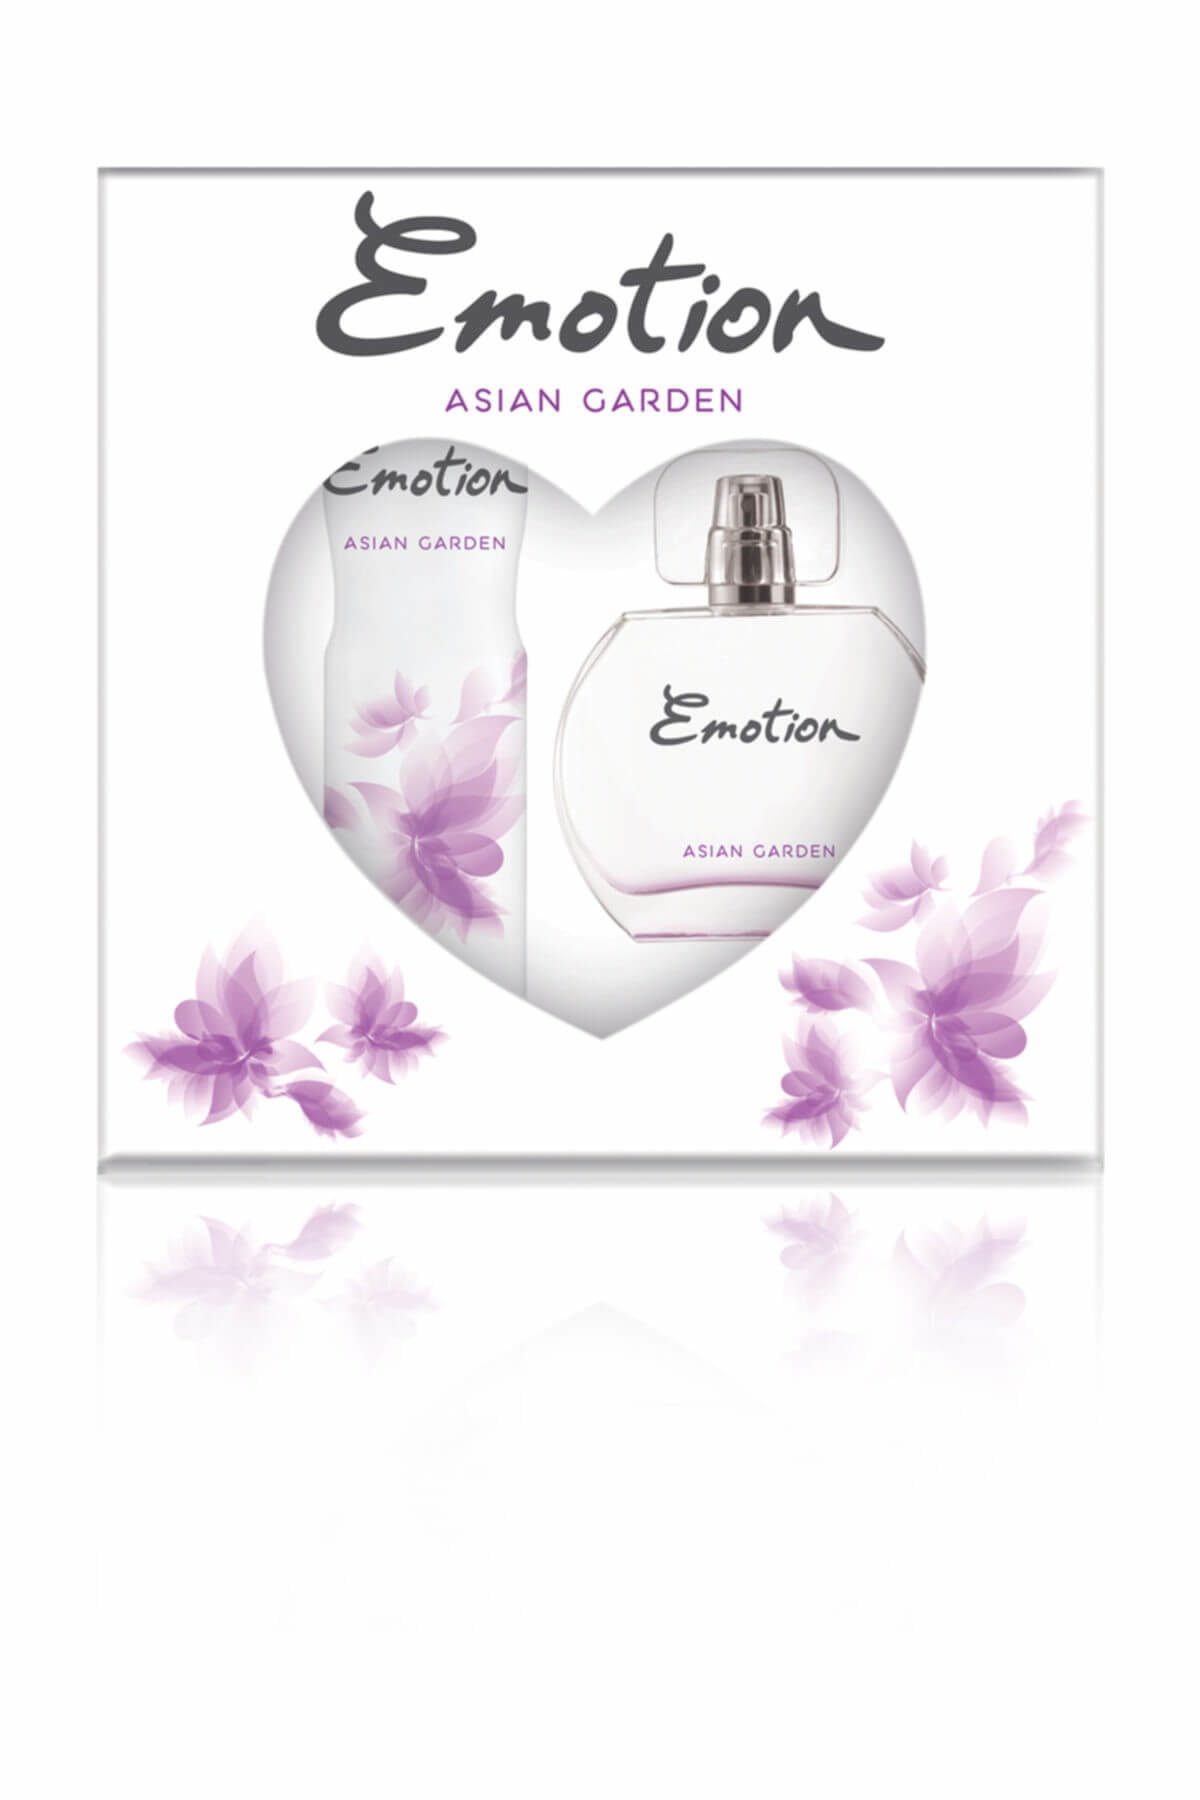 Emotion Asian garden Edt Deodorant Kadın Parfüm Seti 50 ml + 150 ml 1